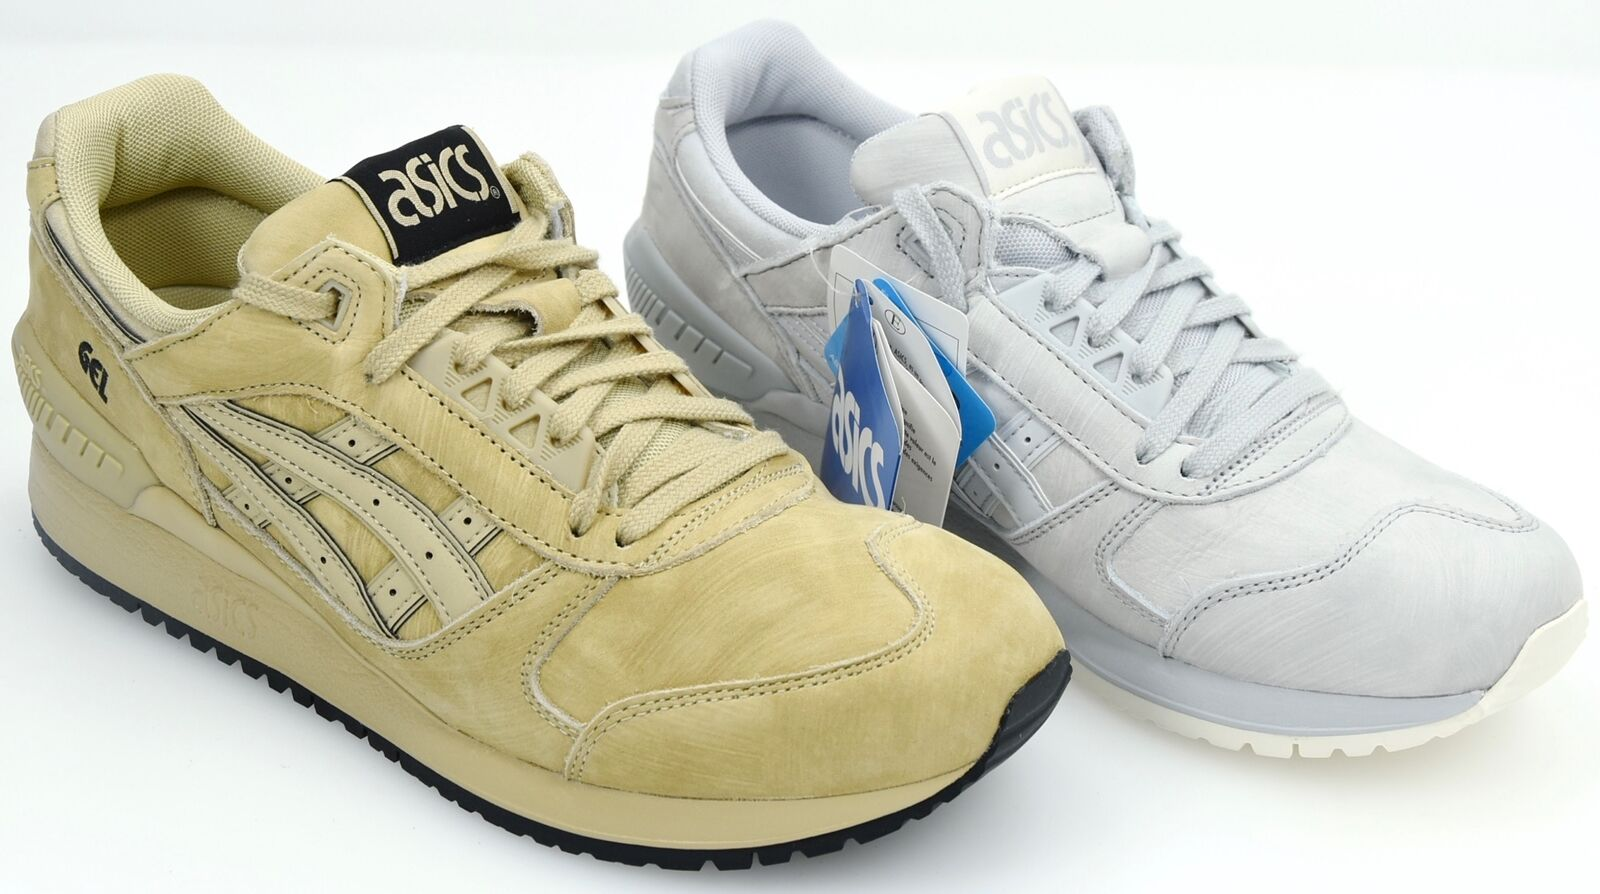 ASICS MAN FREEE TIME CASUAL SNEAKER SHOES SUEDE CODE HL7Z4 GEL-RESPECTOR